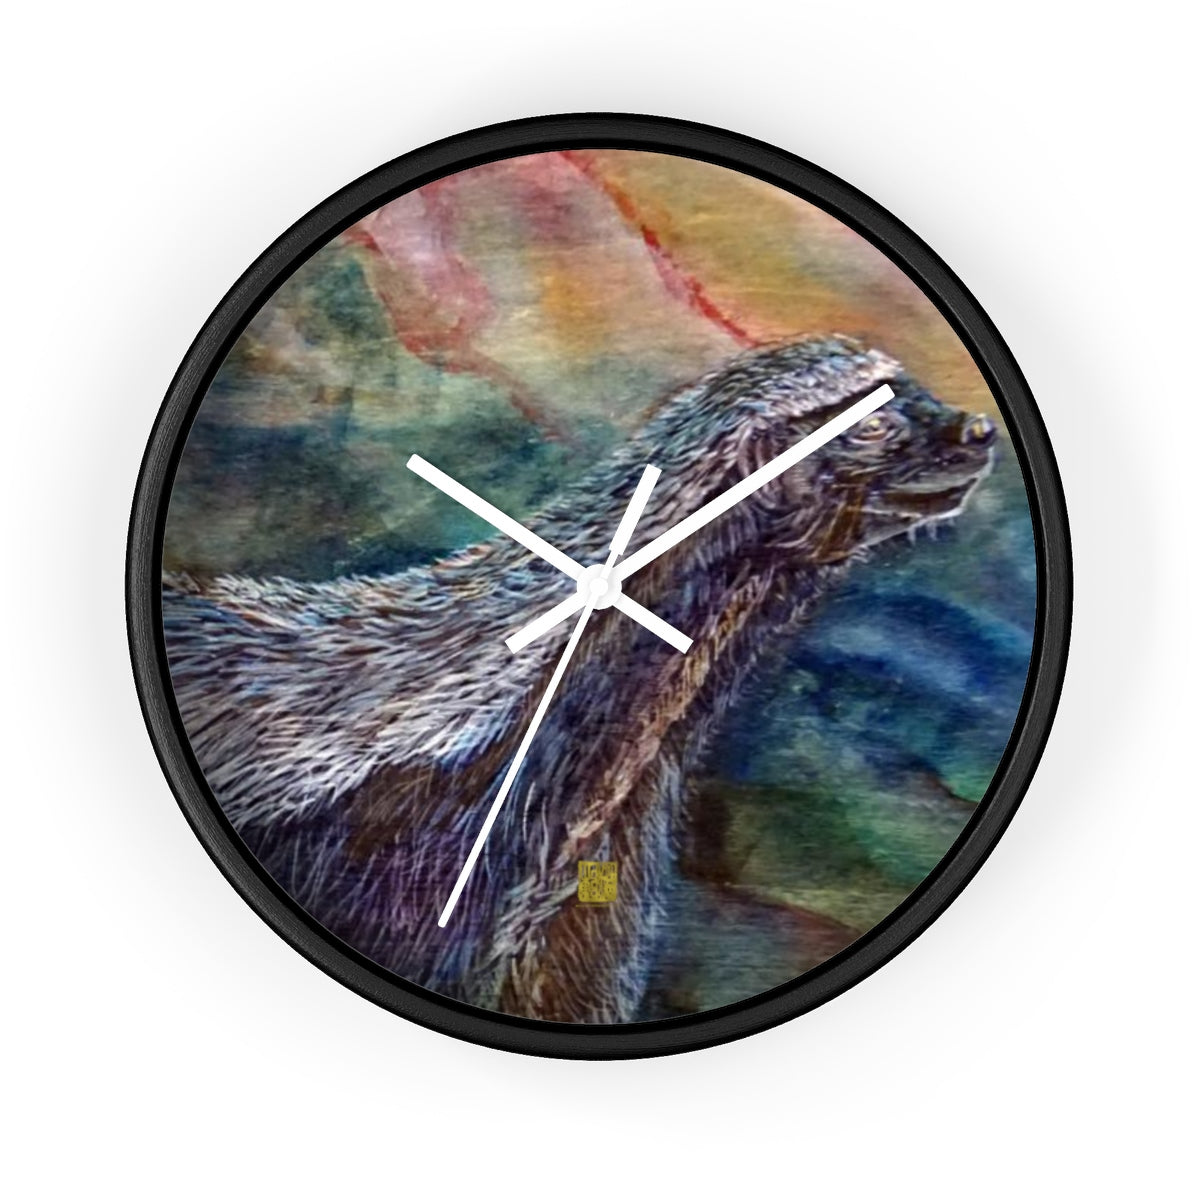 "Honey Badger Chasing Bees, 10"" Diameter Badgers Fine Art Wooden Wall Clock, Made in USA - alicechanart"